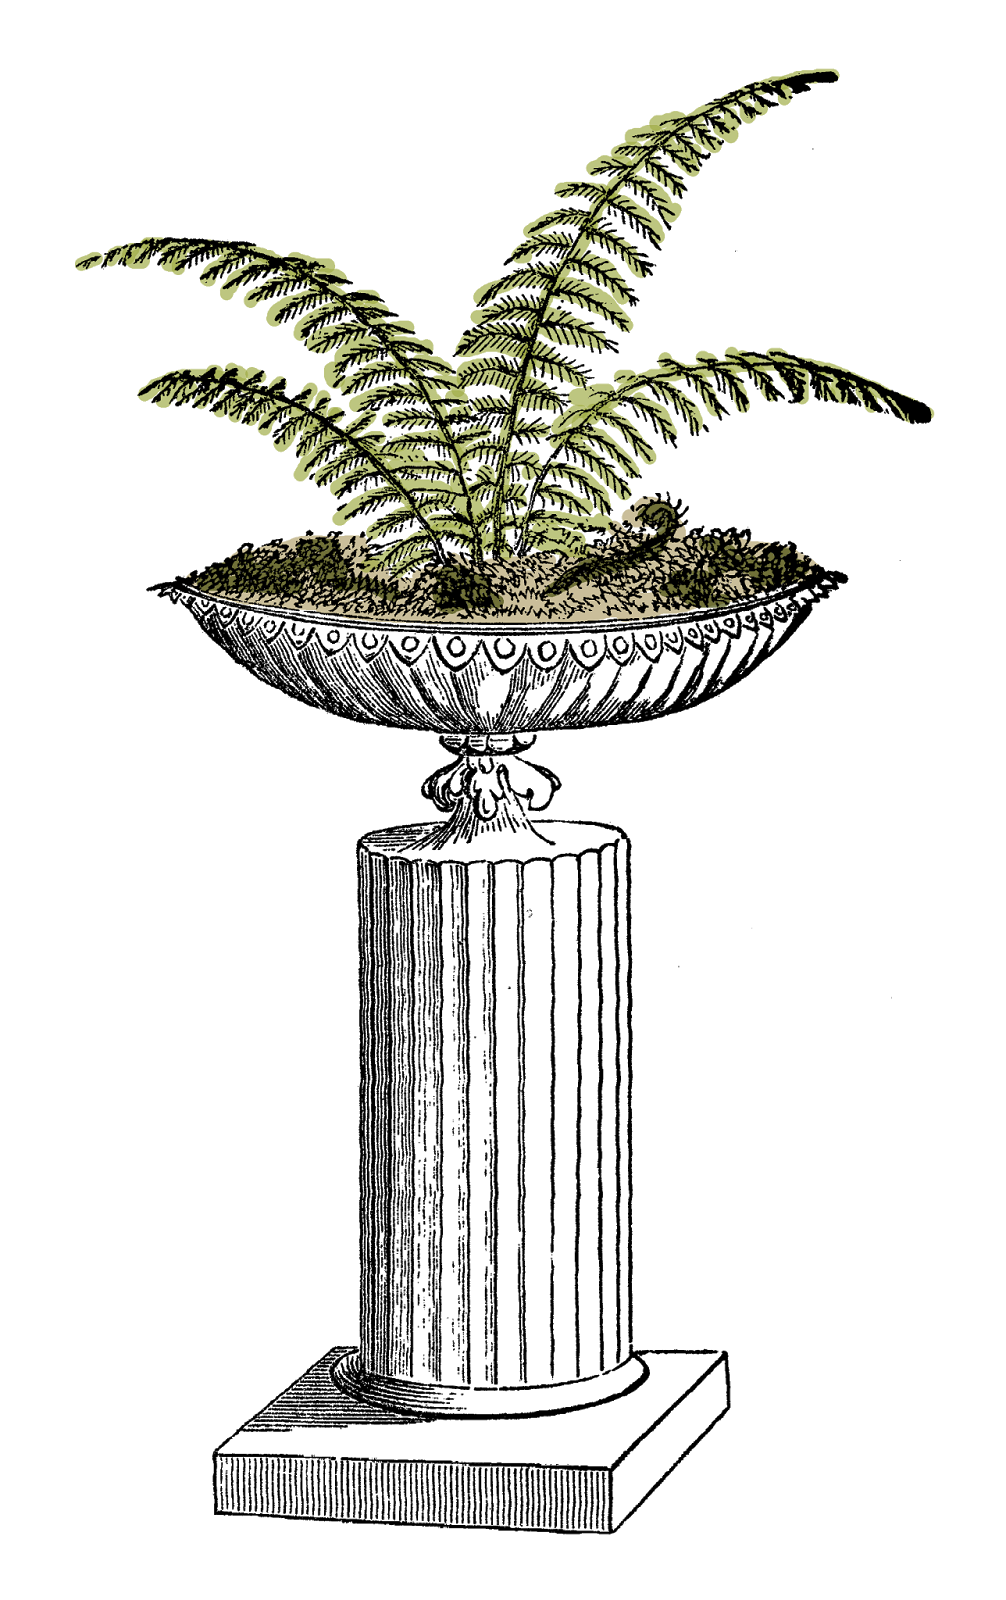 Fern clipart illustrated. Antique images potted digital